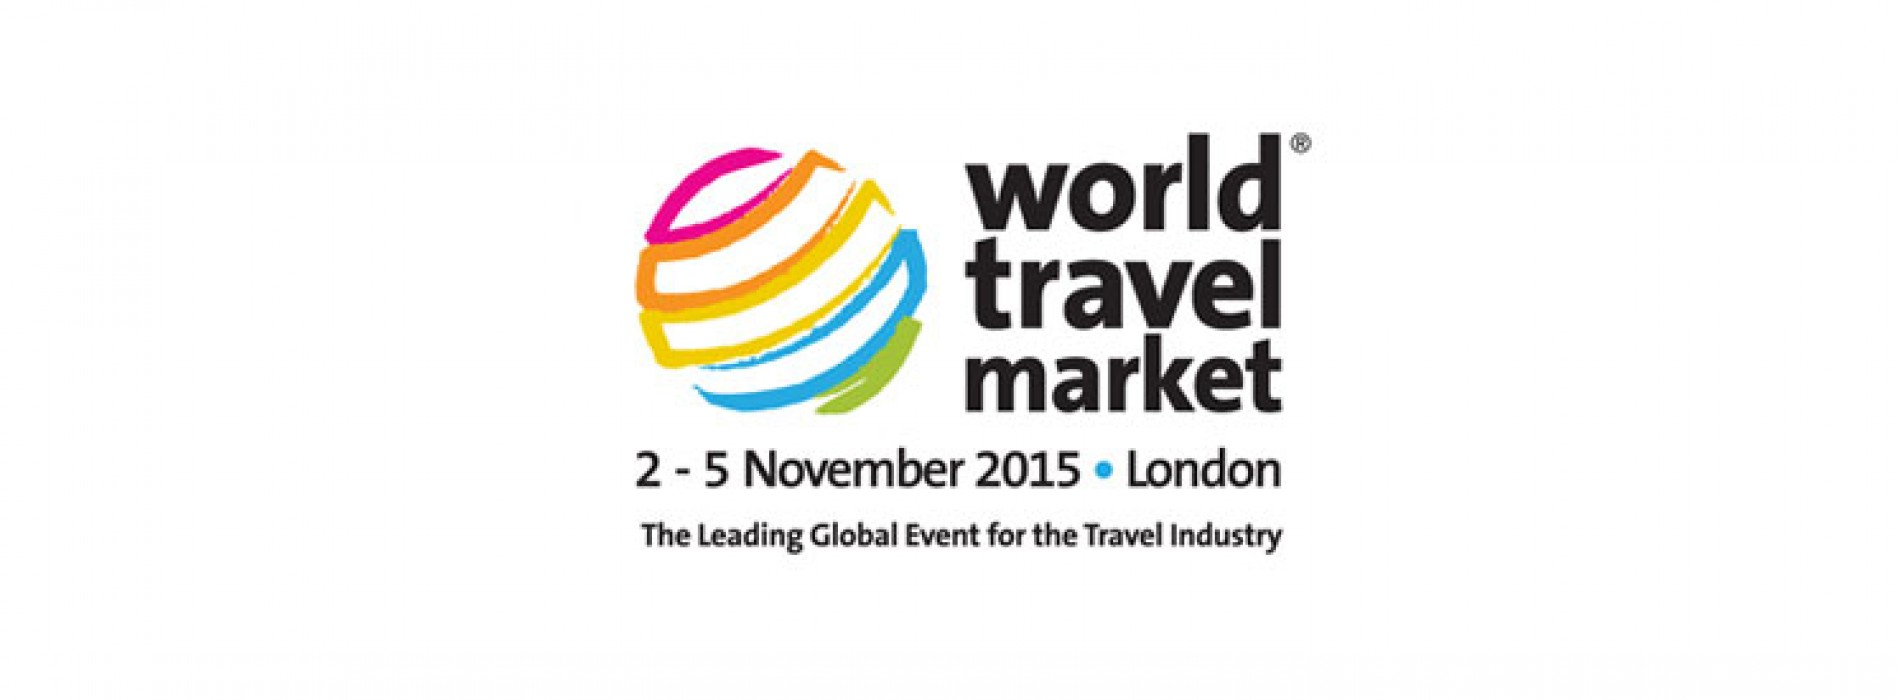 World Travel Market Welcomes Hundreds of New Exhibitors